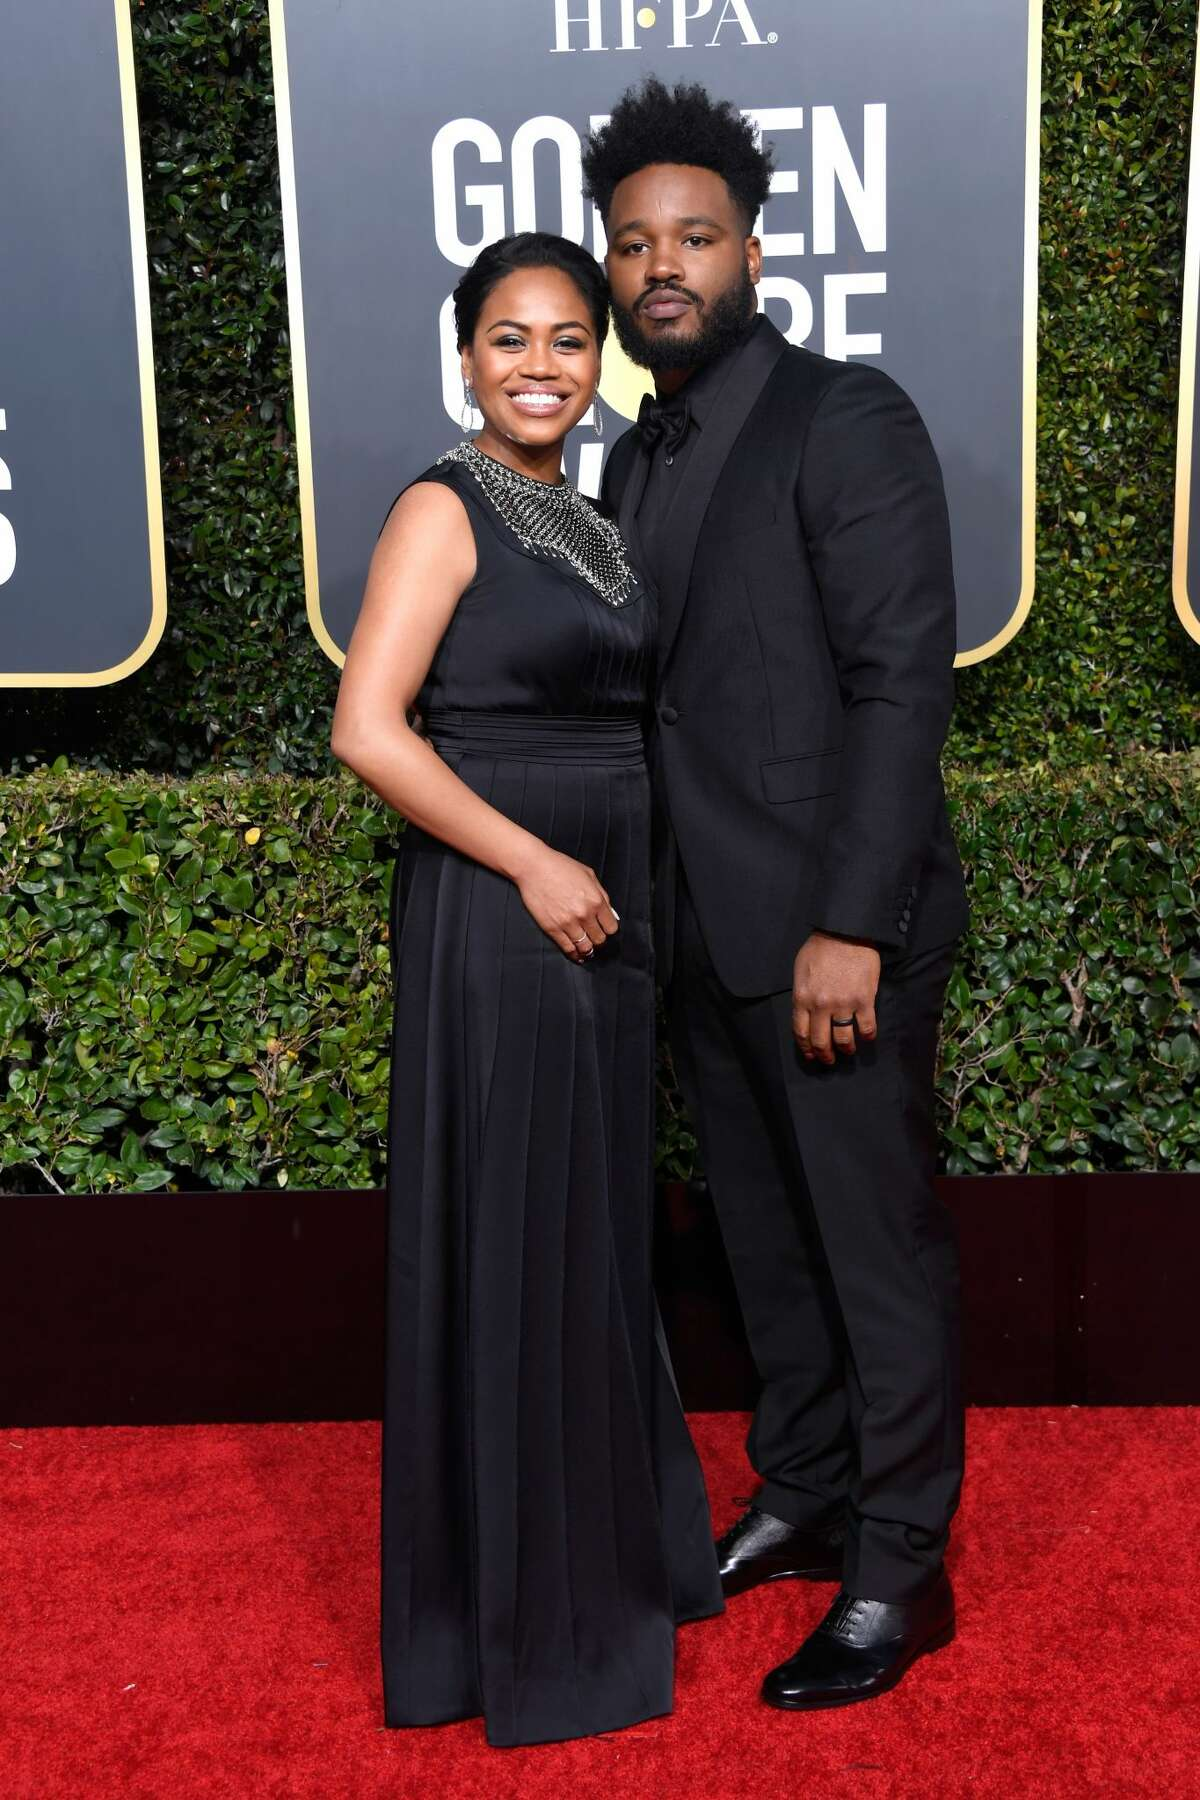 Zinzi Evans (L) and Ryan Coogler attend the 76th Annual Golden Globe Awards at The Beverly Hilton Hotel on January 6, 2019 in Beverly Hills, California.